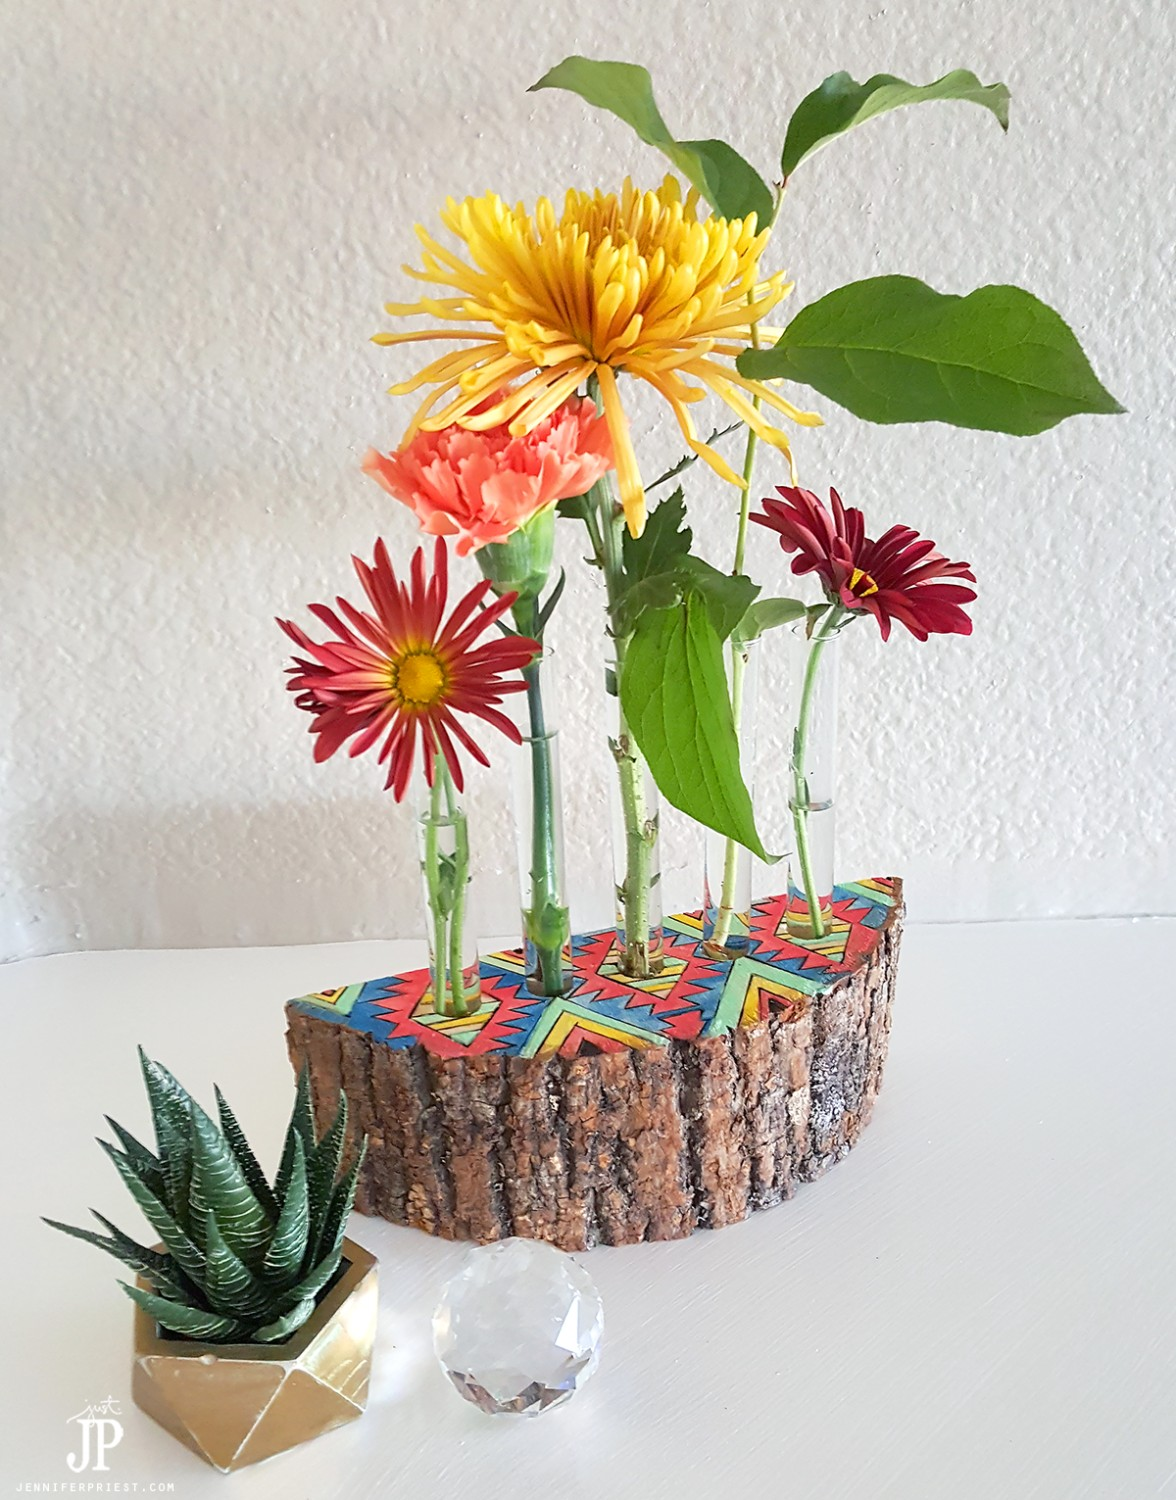 Test-Tube-Flower-vase-in-Wood-JPriest